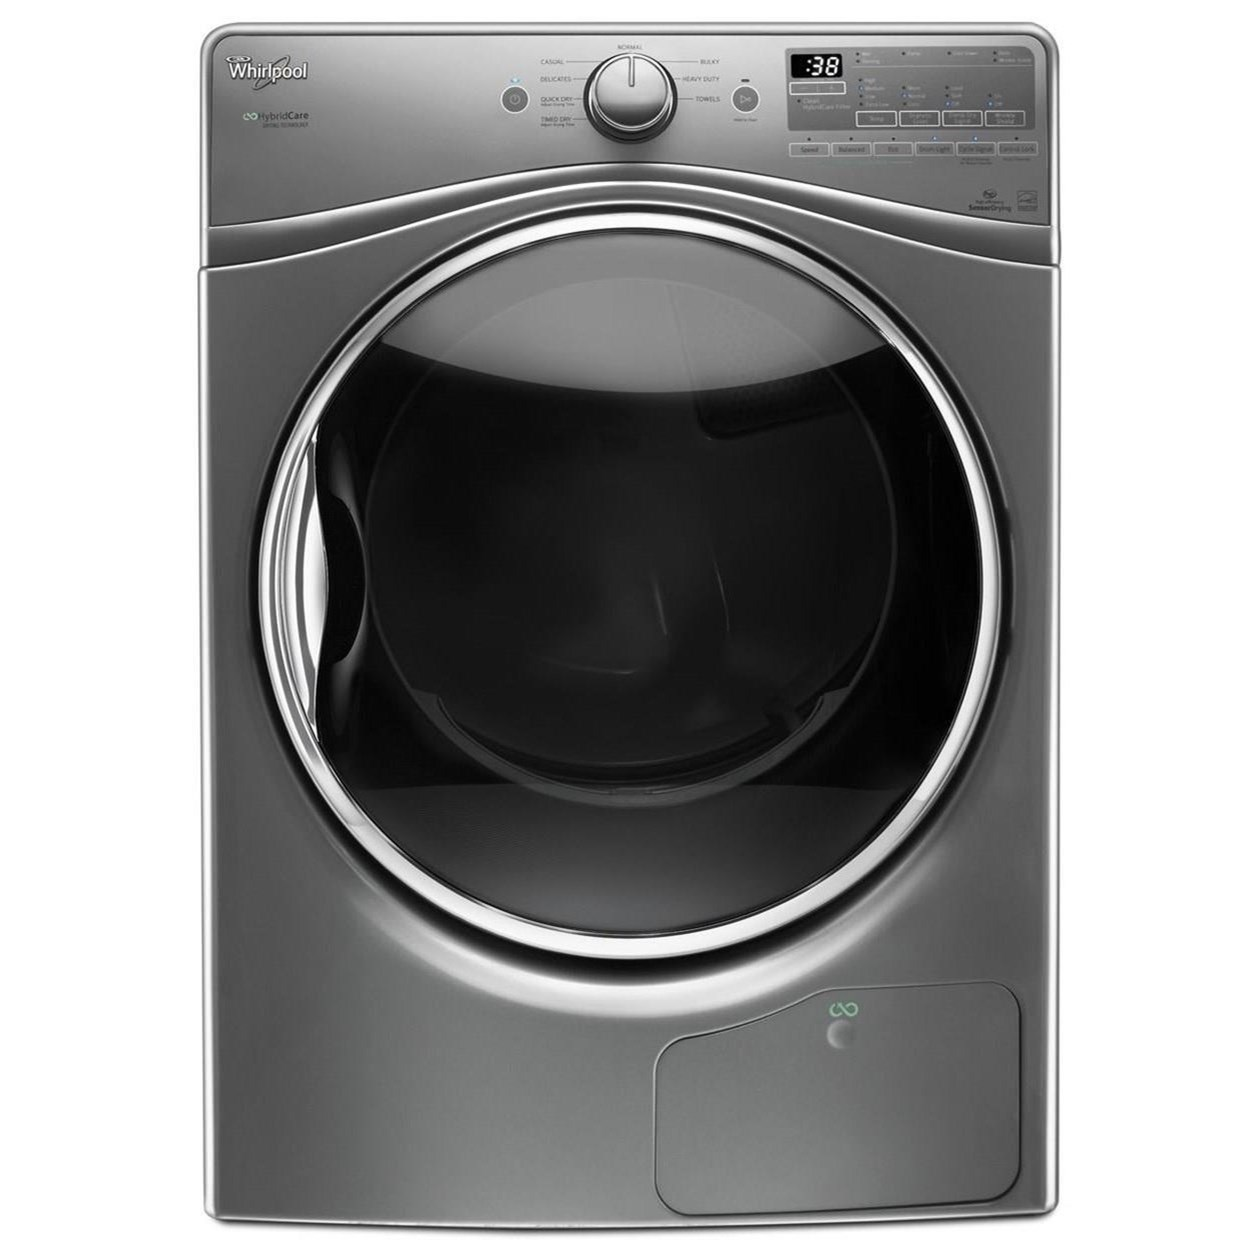 Whirlpool Electric Front Load Dryers 7.4 cu. ft. HybridCare™ True Ventless Dryer - Item Number: WED9290FC